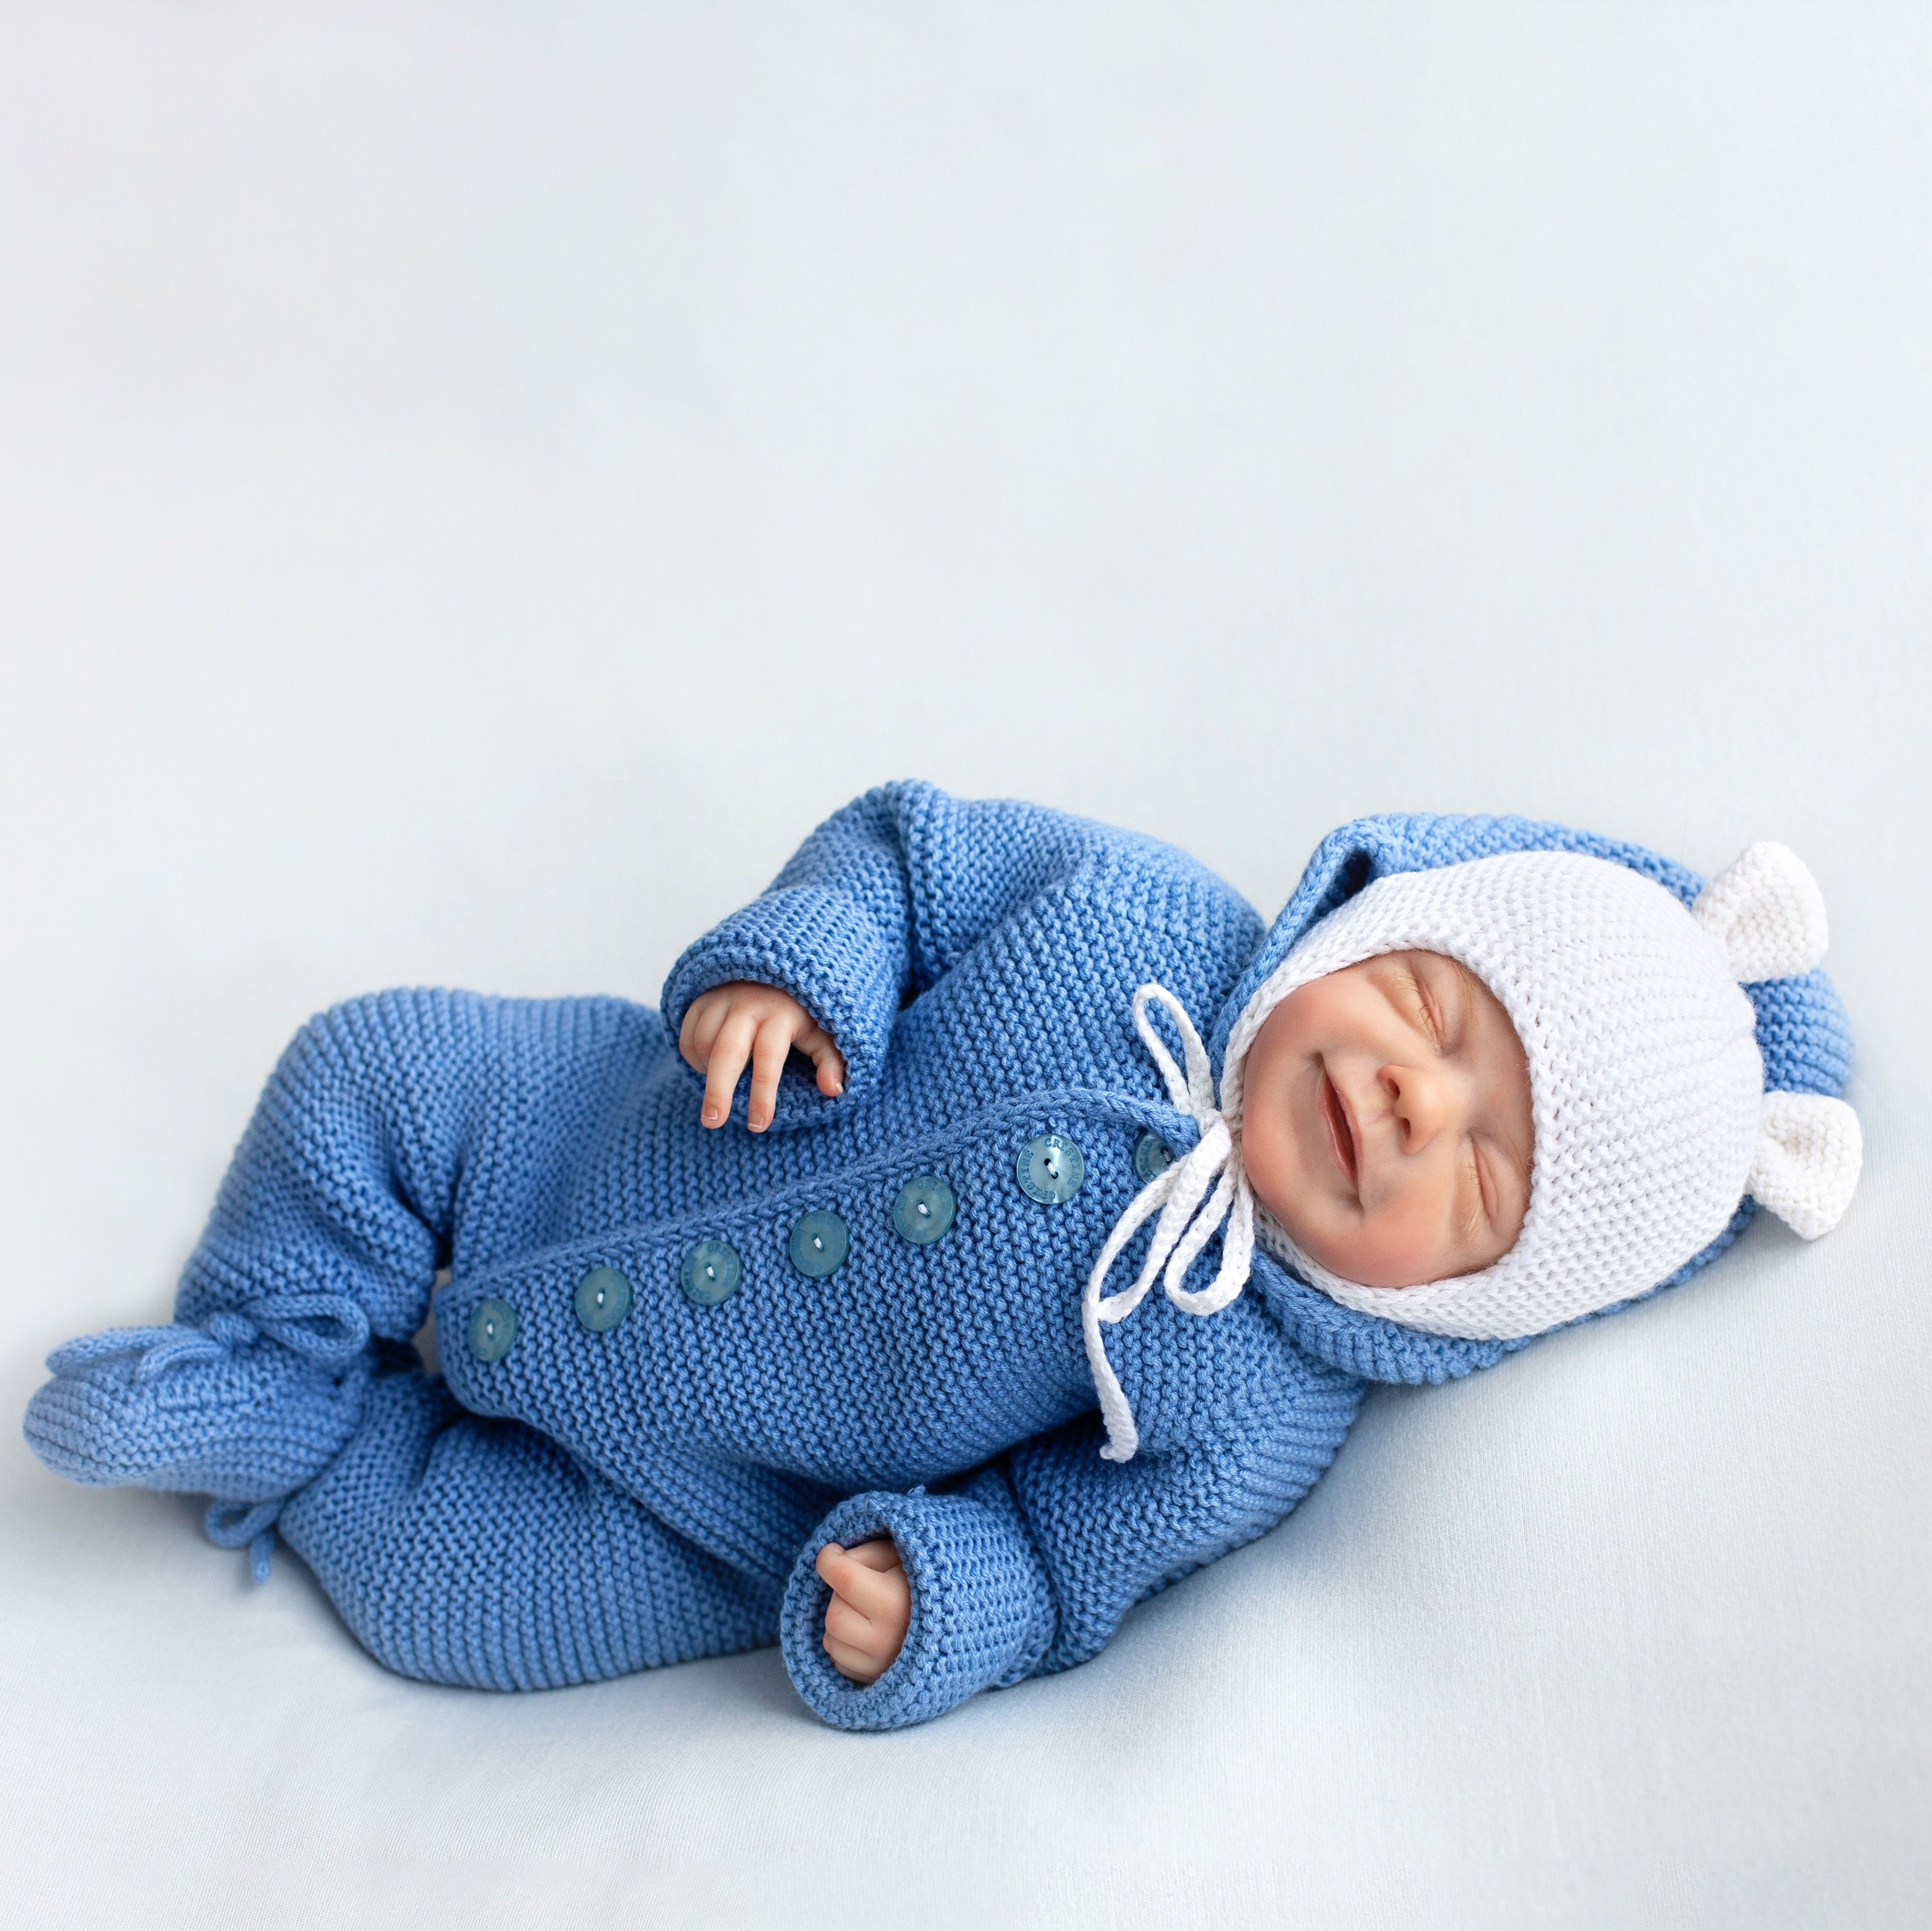 Soft yarn Baby clothes Warm baby body Very fine yarn For a newborn Baby jacket Hand-knit Baby clothing Light blue baby bootie